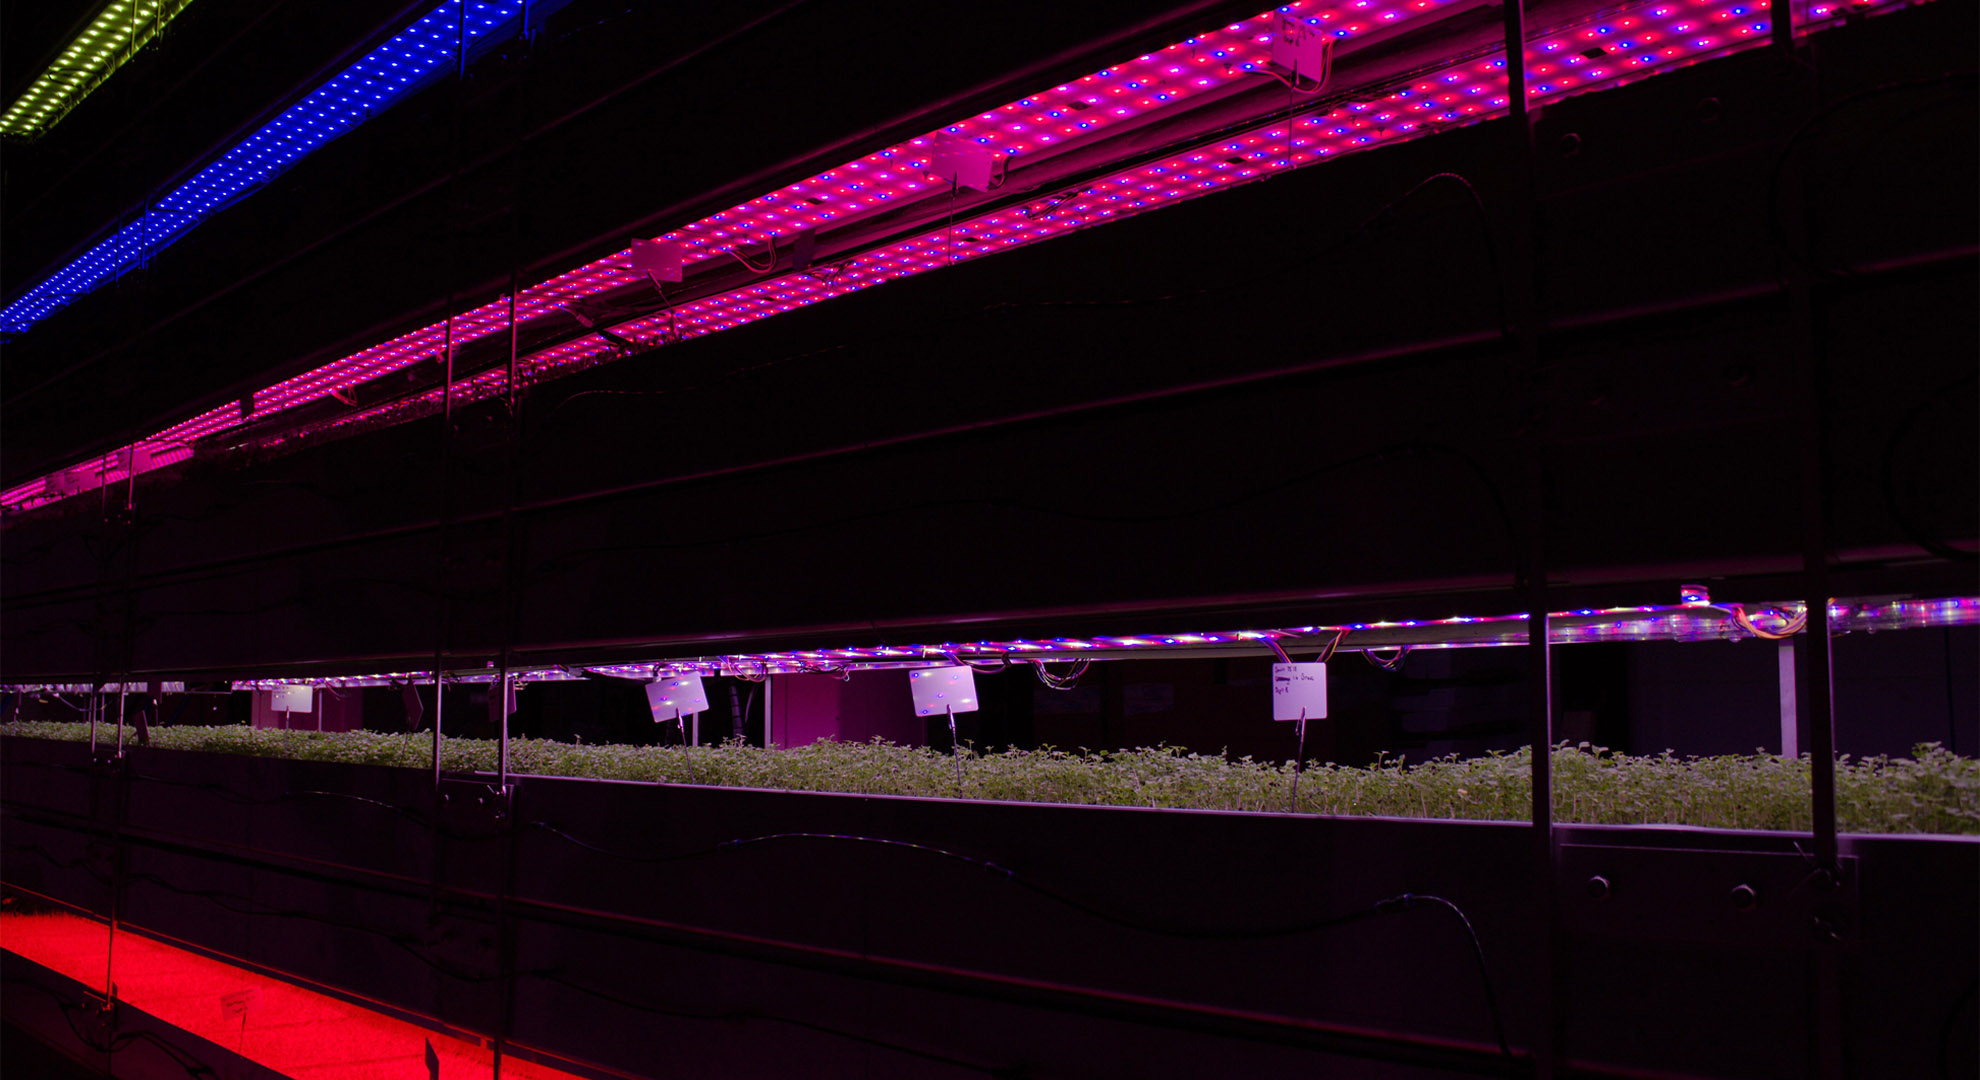 A different growing system for urban agriculture.